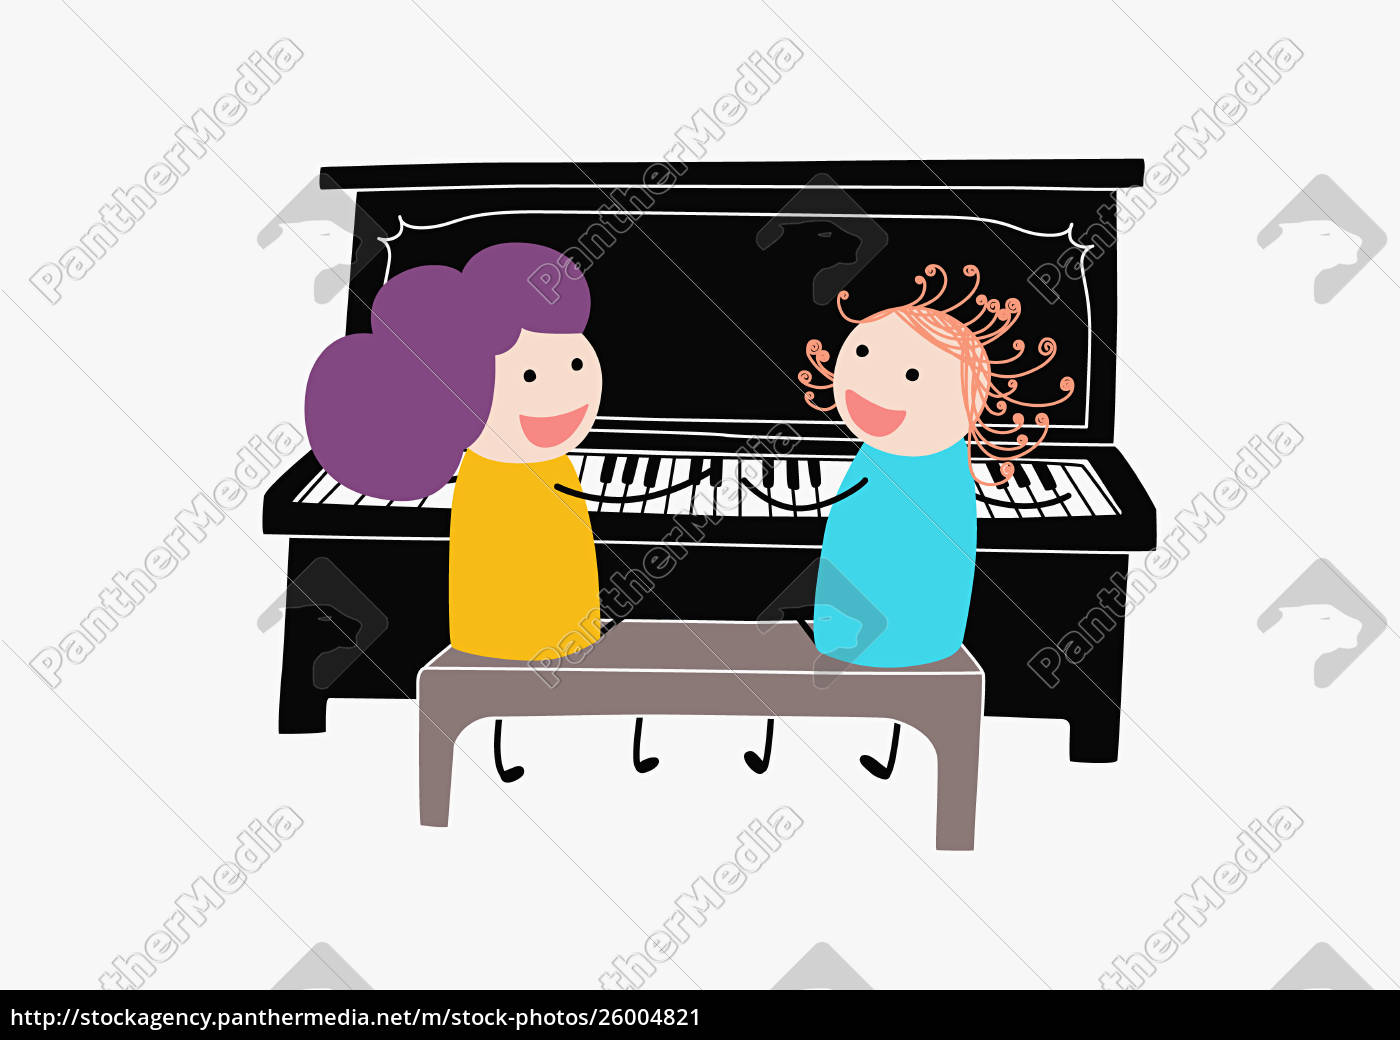 children, playing, duet, on, piano - 26004821